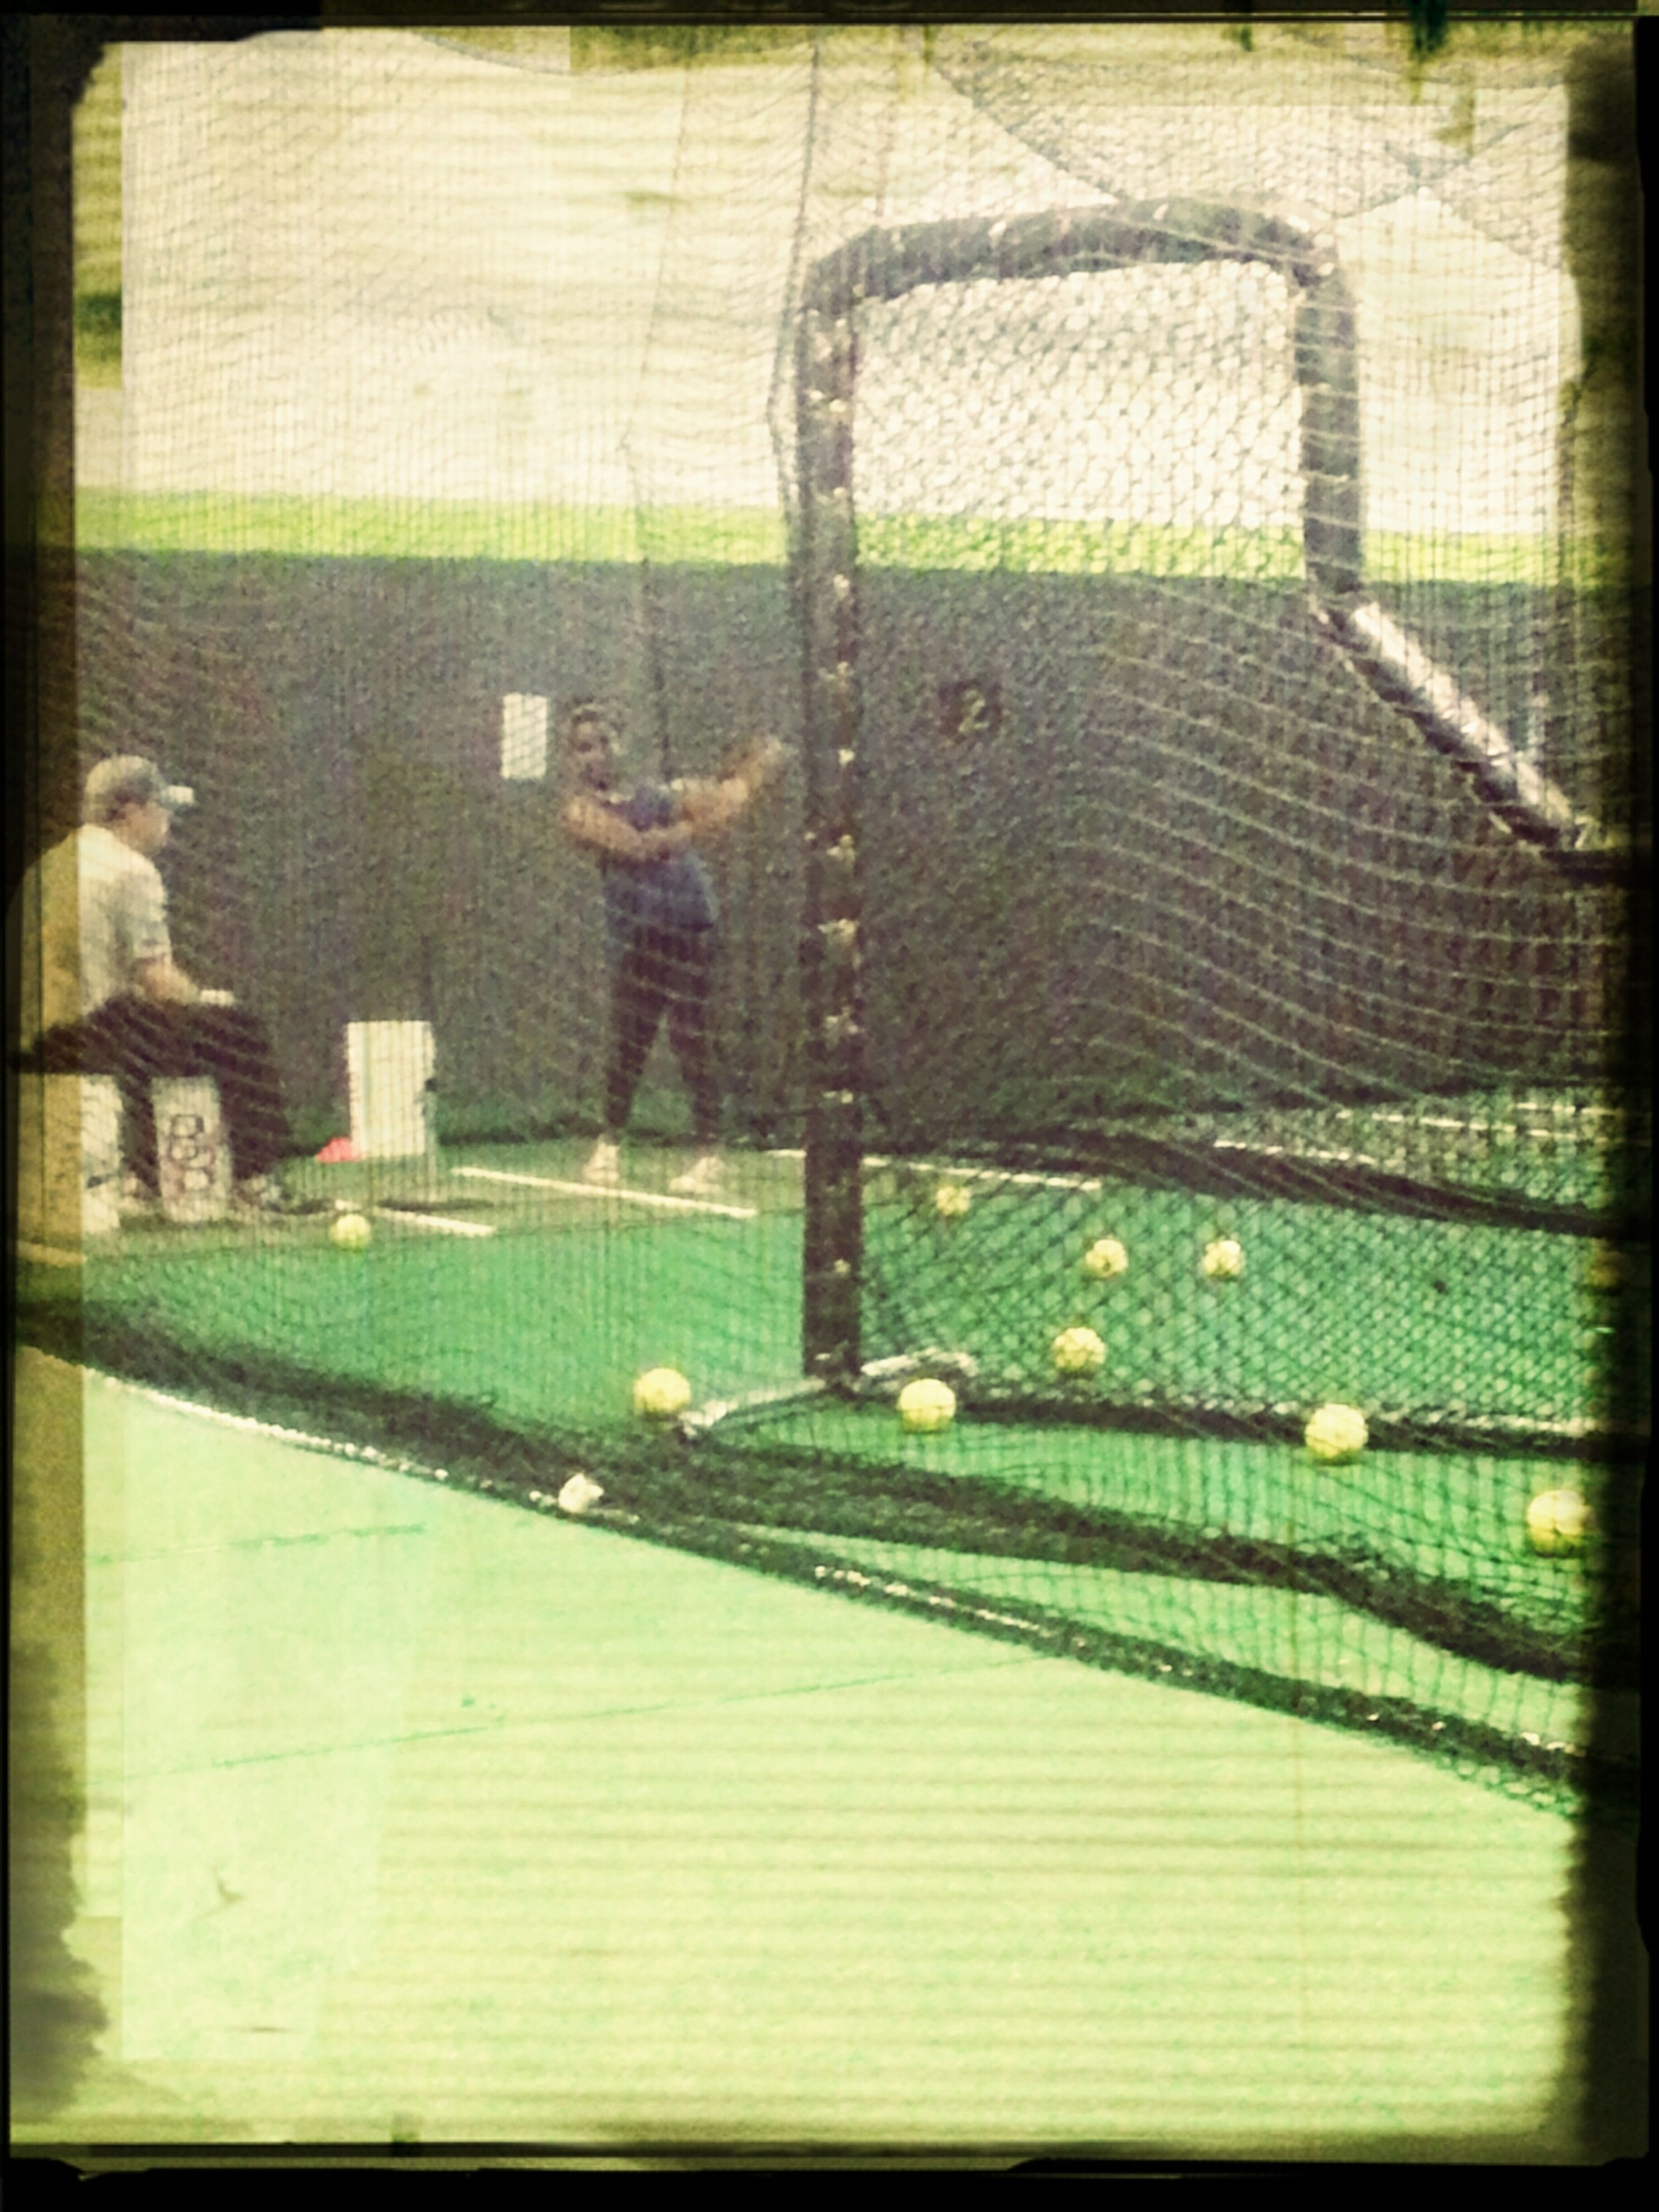 Spending money on her....on my birthday! But her passion is my passion no matter the price. Battinglessons